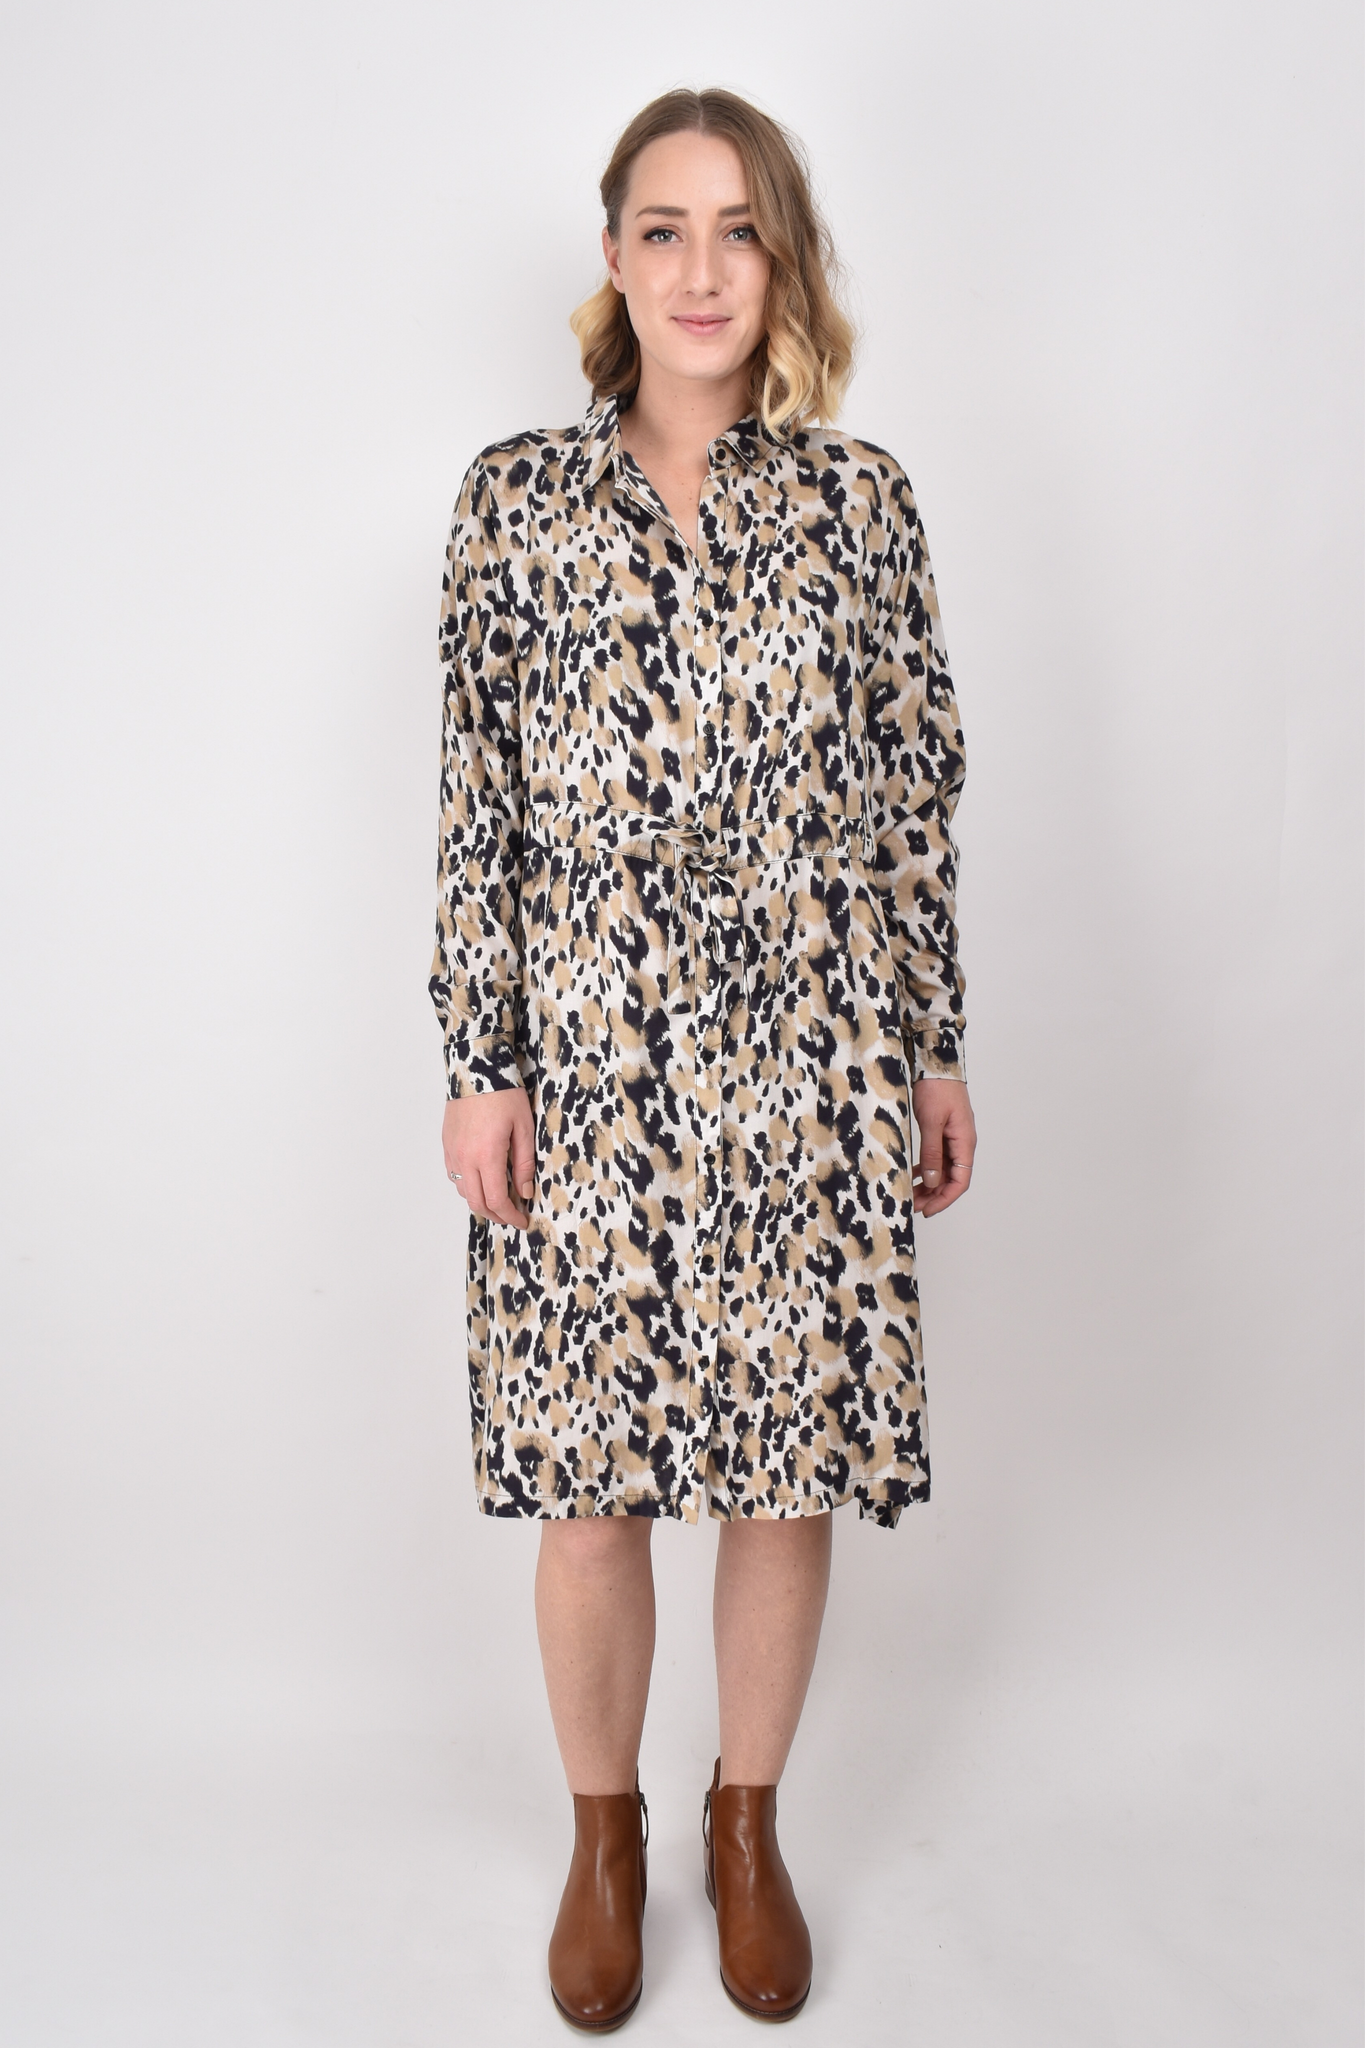 L/S Tie Shirt Dress in Jungle Leopard